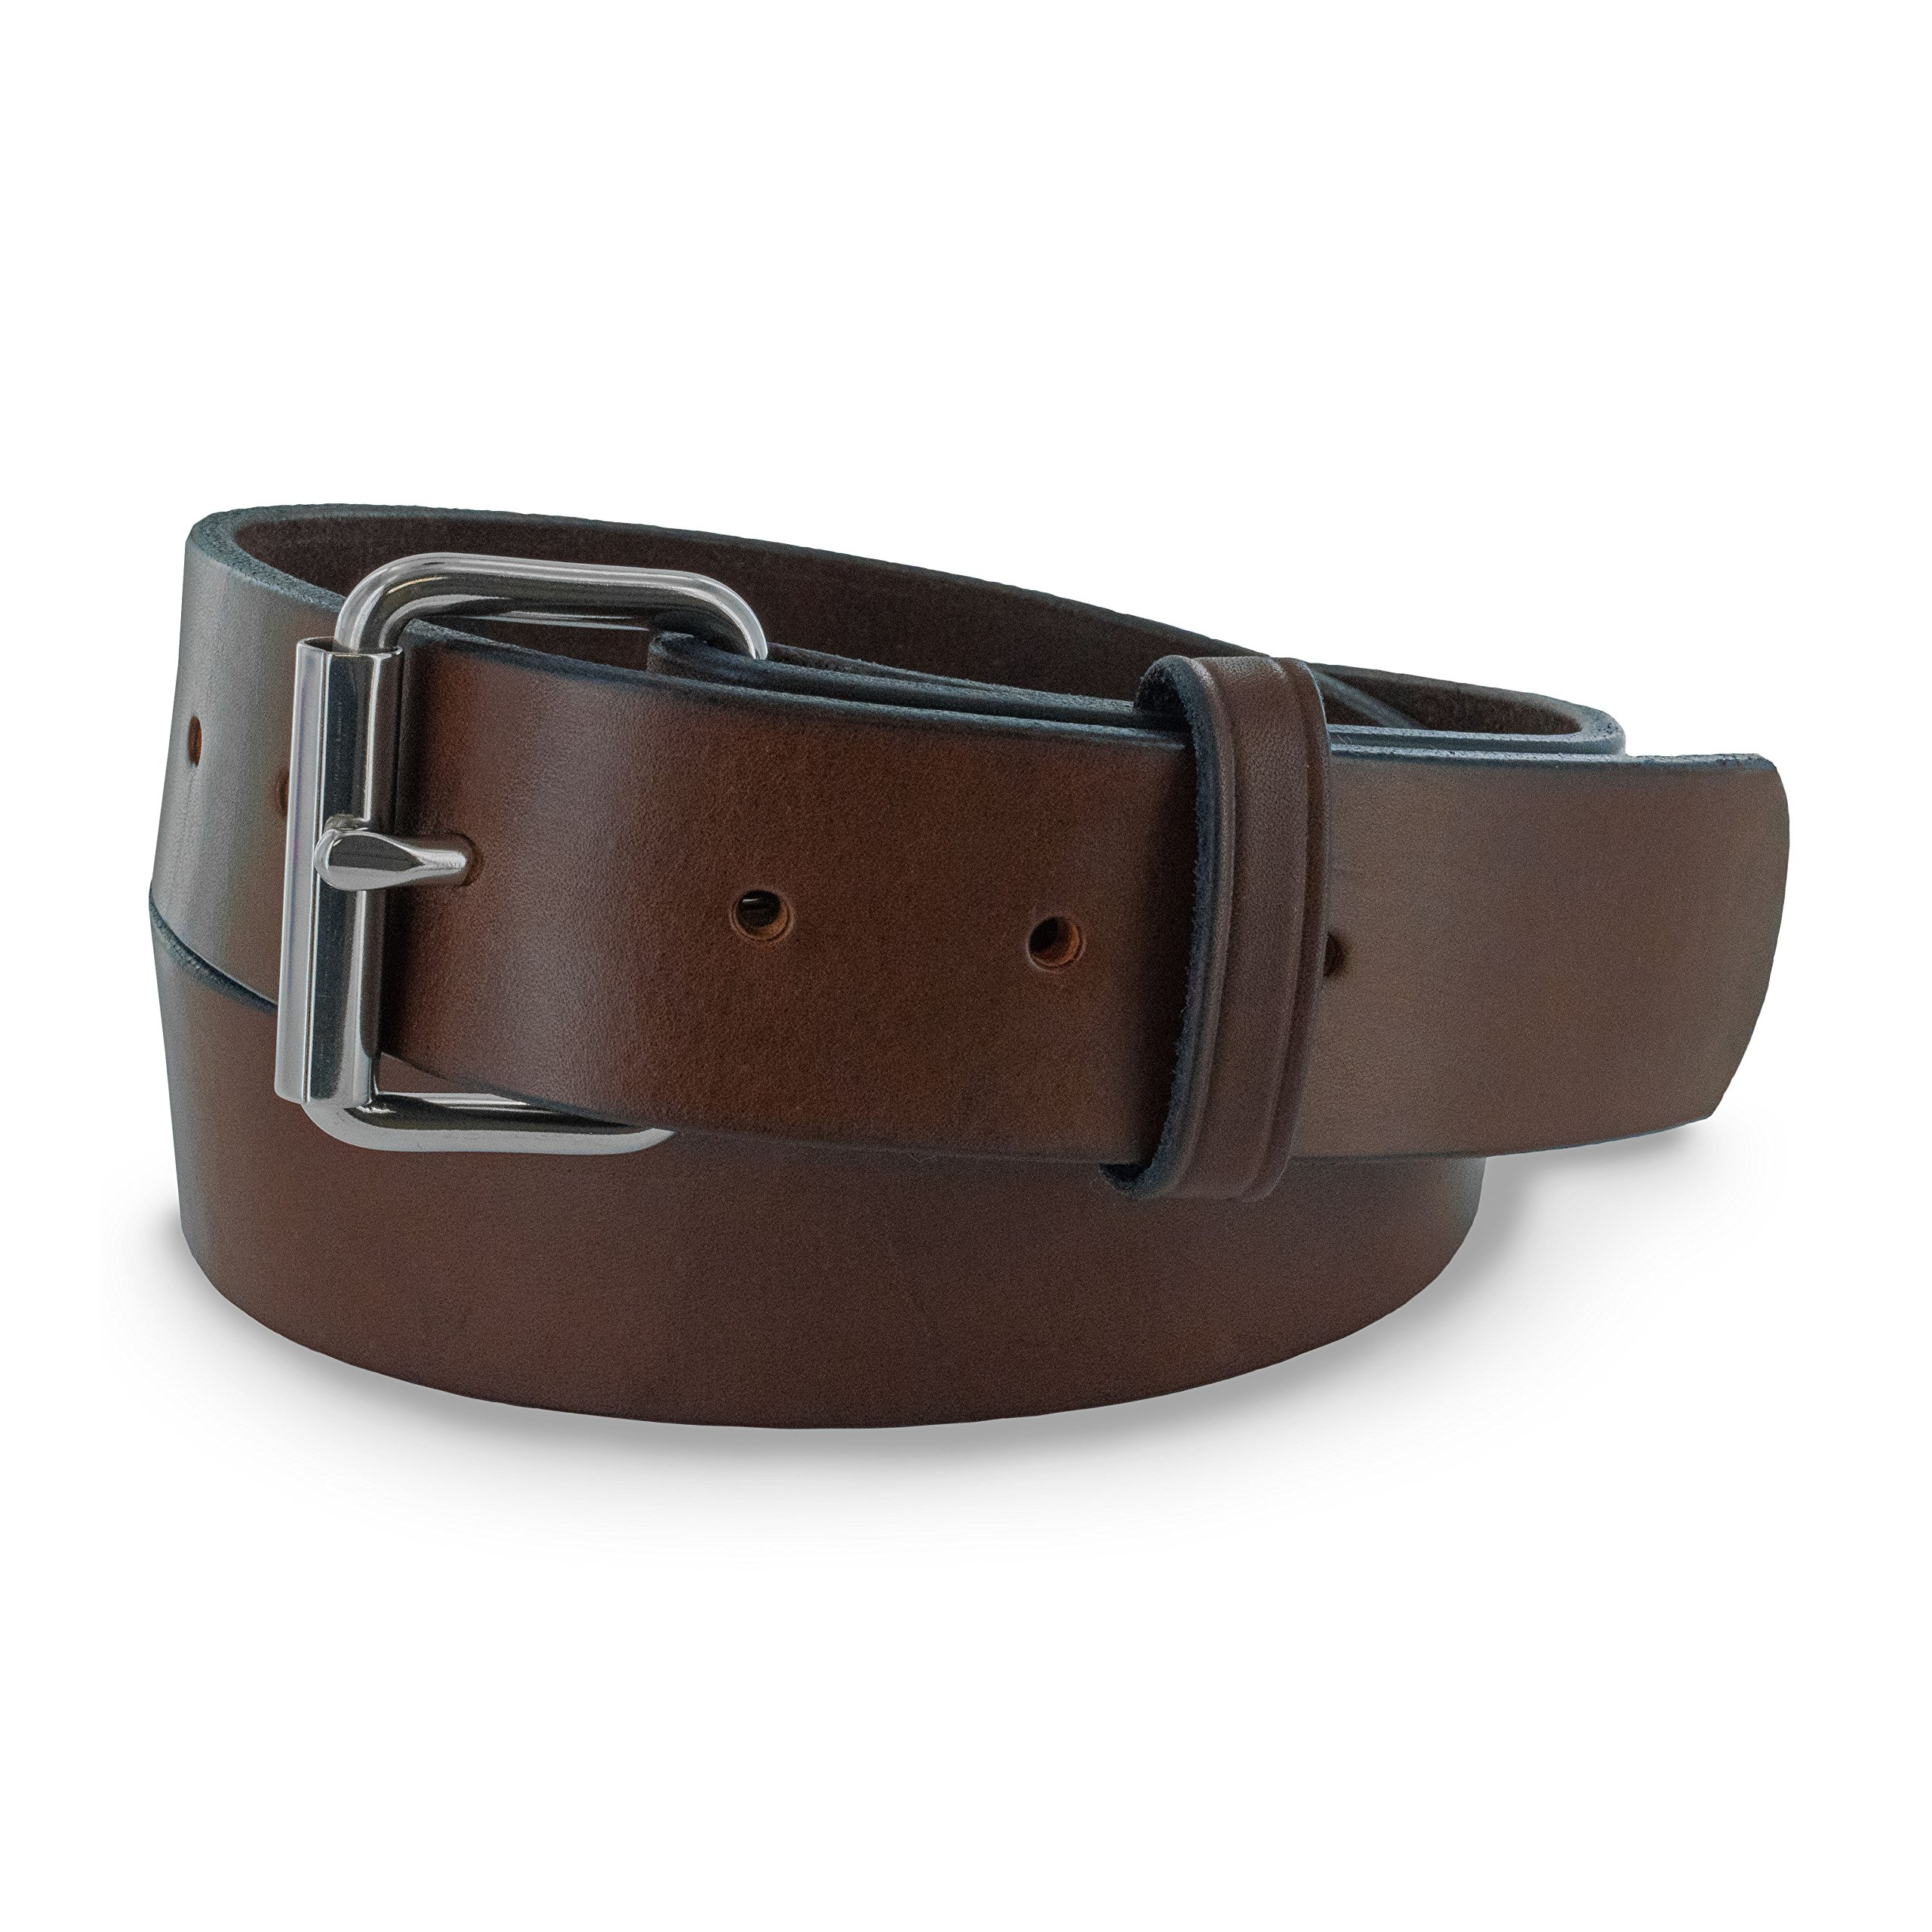 Hanks AMA2725 Enforcer Belt - 1.75'' - Brown - 60 by Hanks Belt